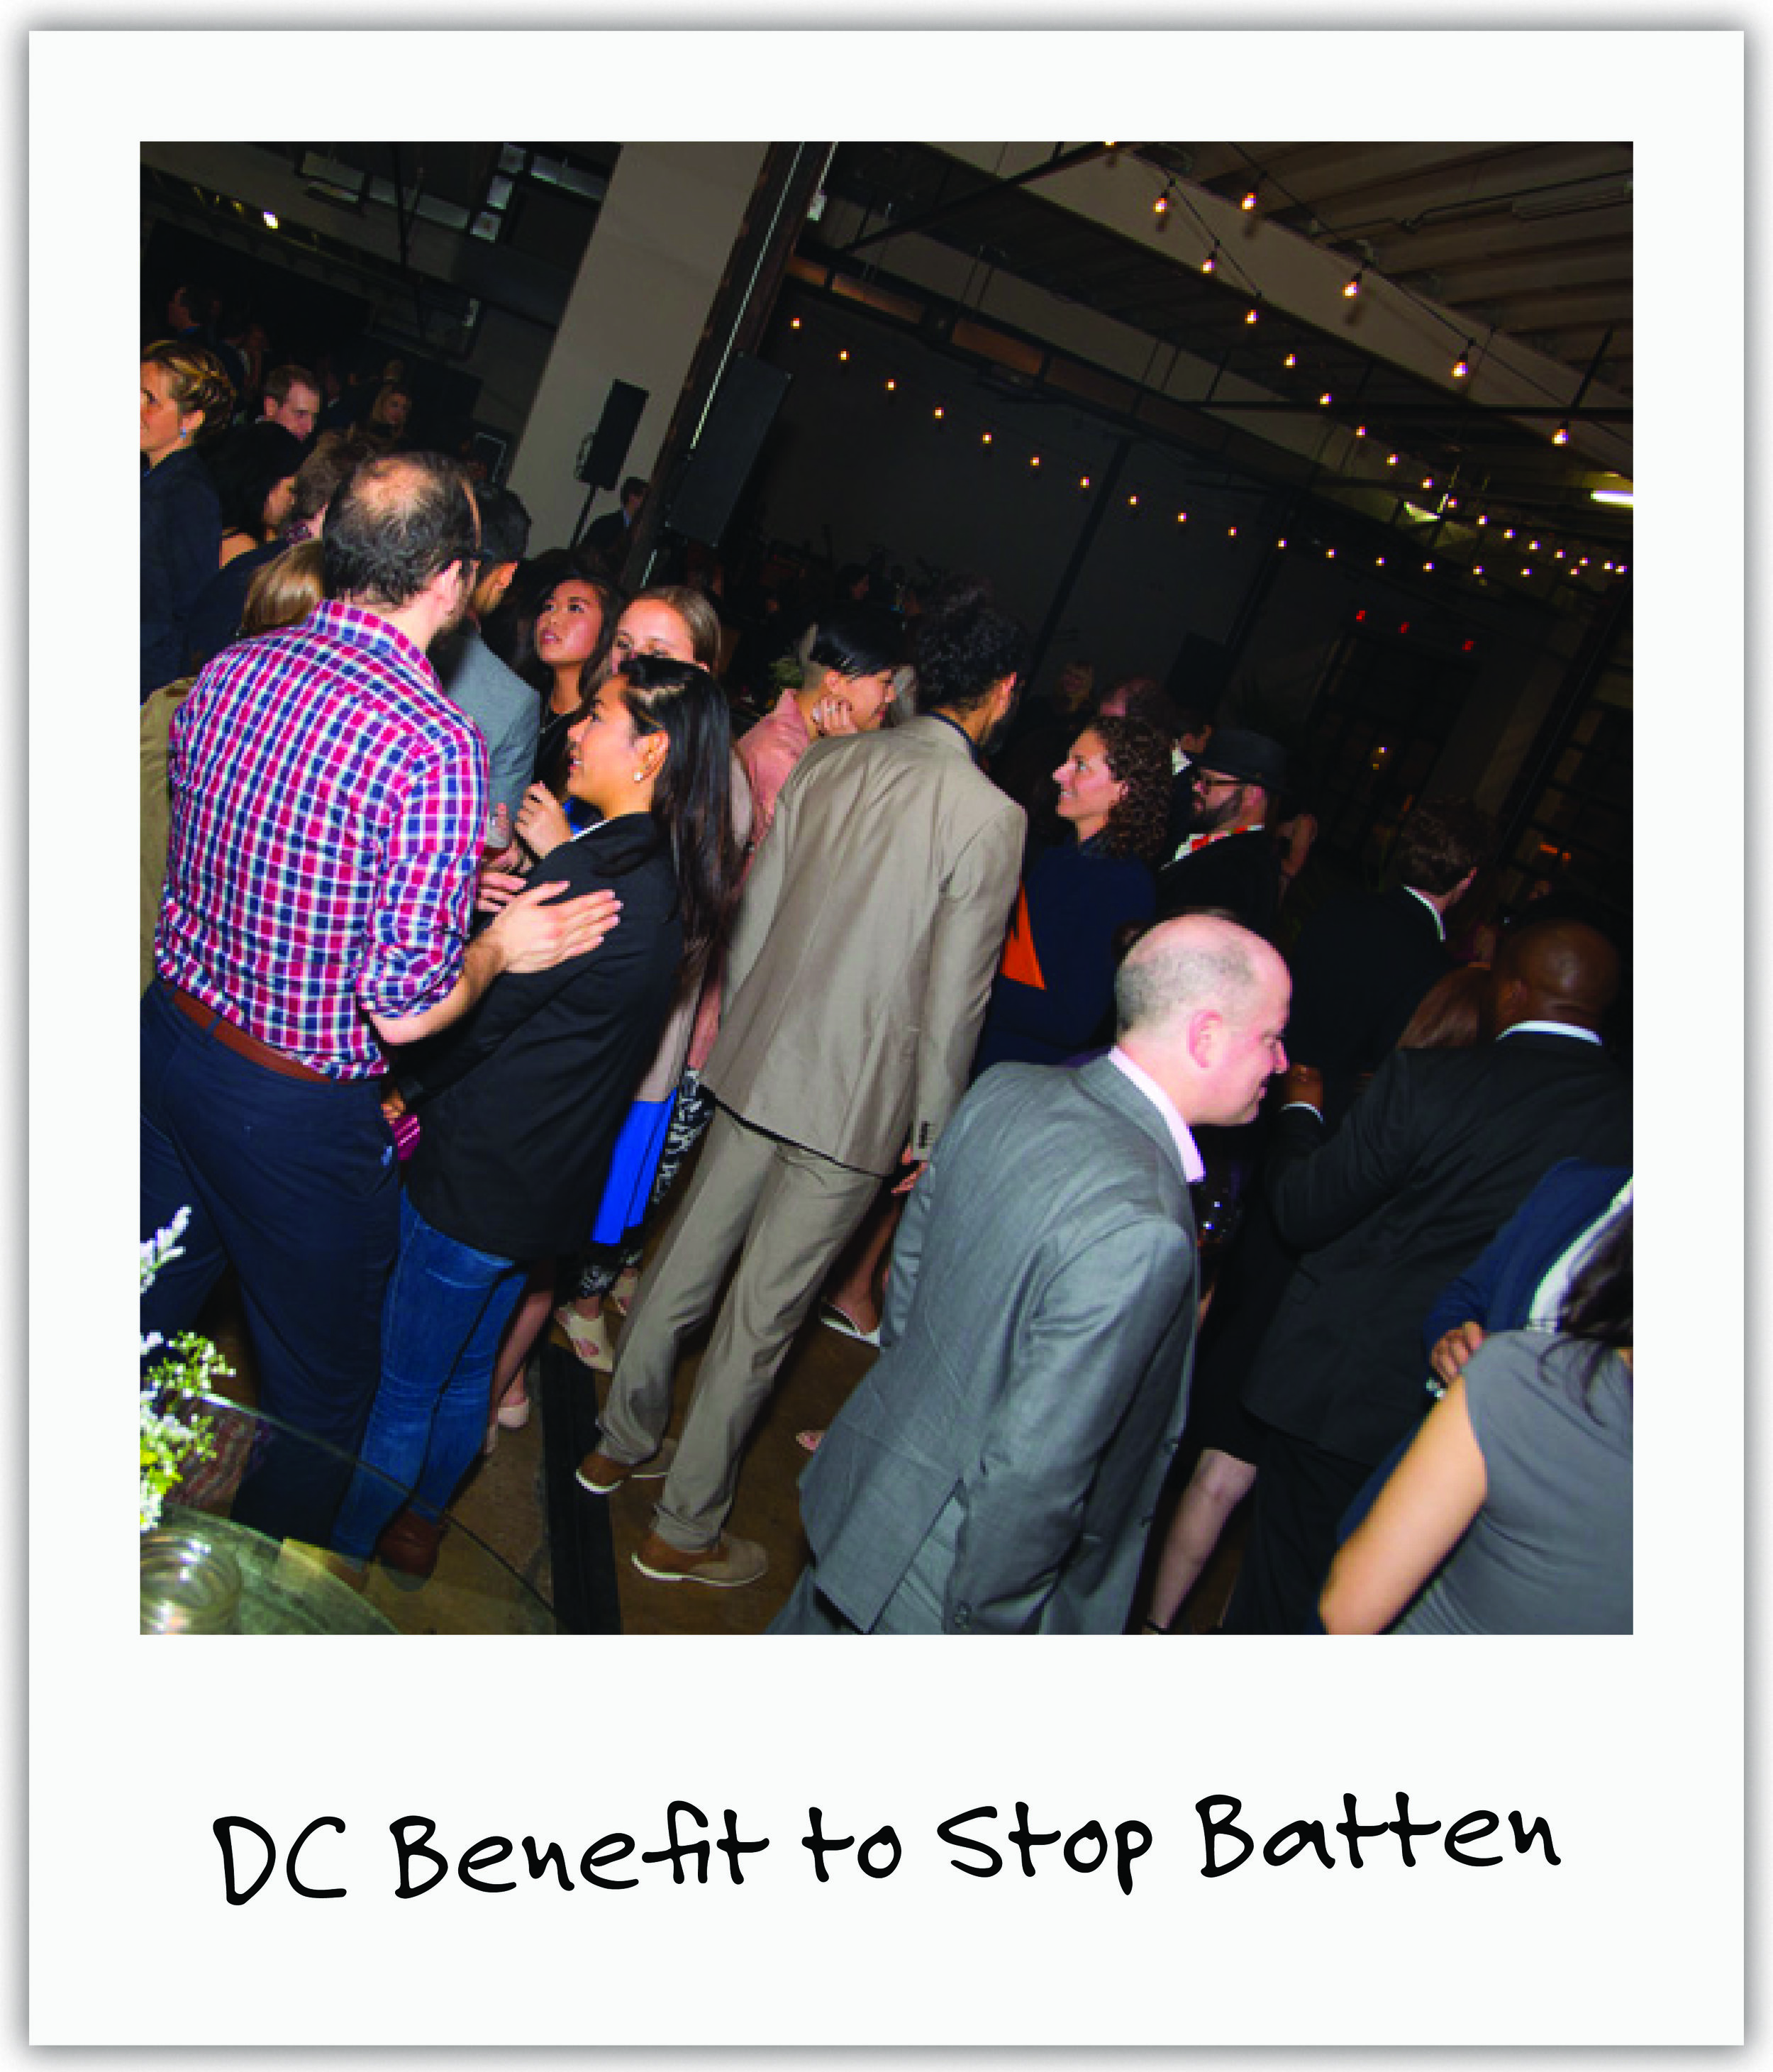 Over 20 top DC chefs and mixologists stood up to fight Batten Disease at this happening gala that gathered hundreds.